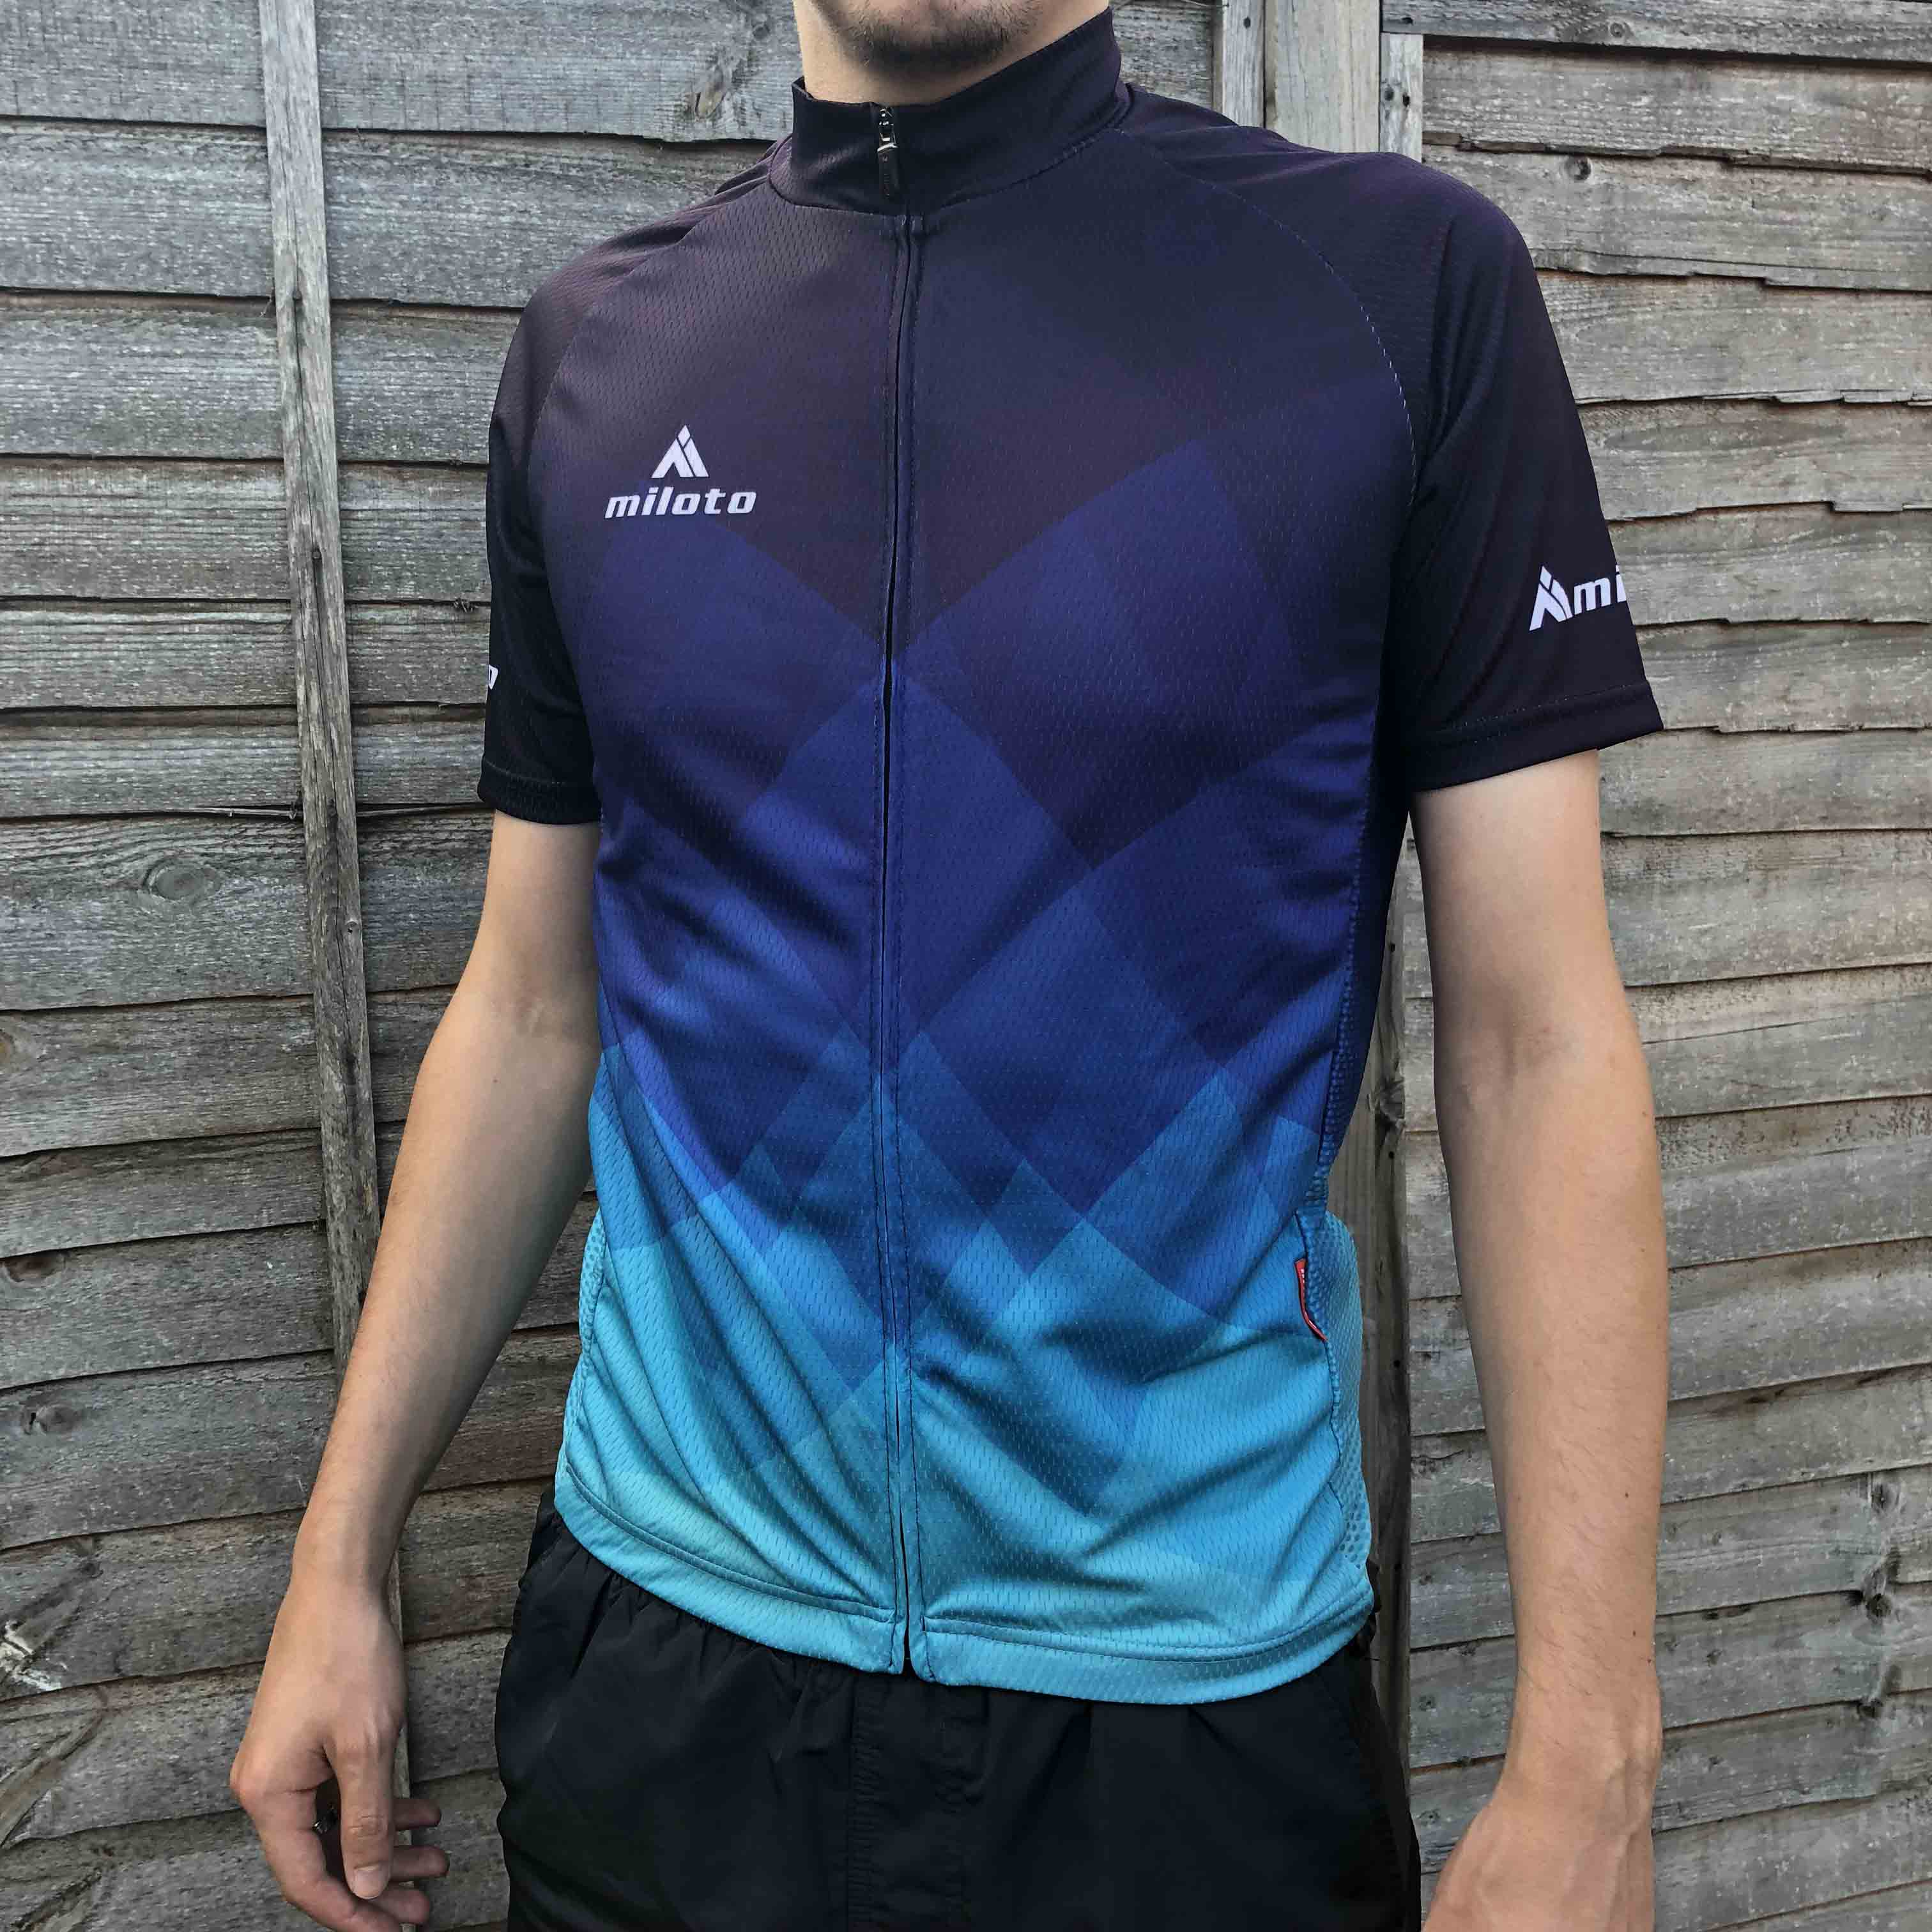 CyclersKit - Pro-Sport MTB Cycling Jersey - Product Review -  TotalMTB 6d73665ee